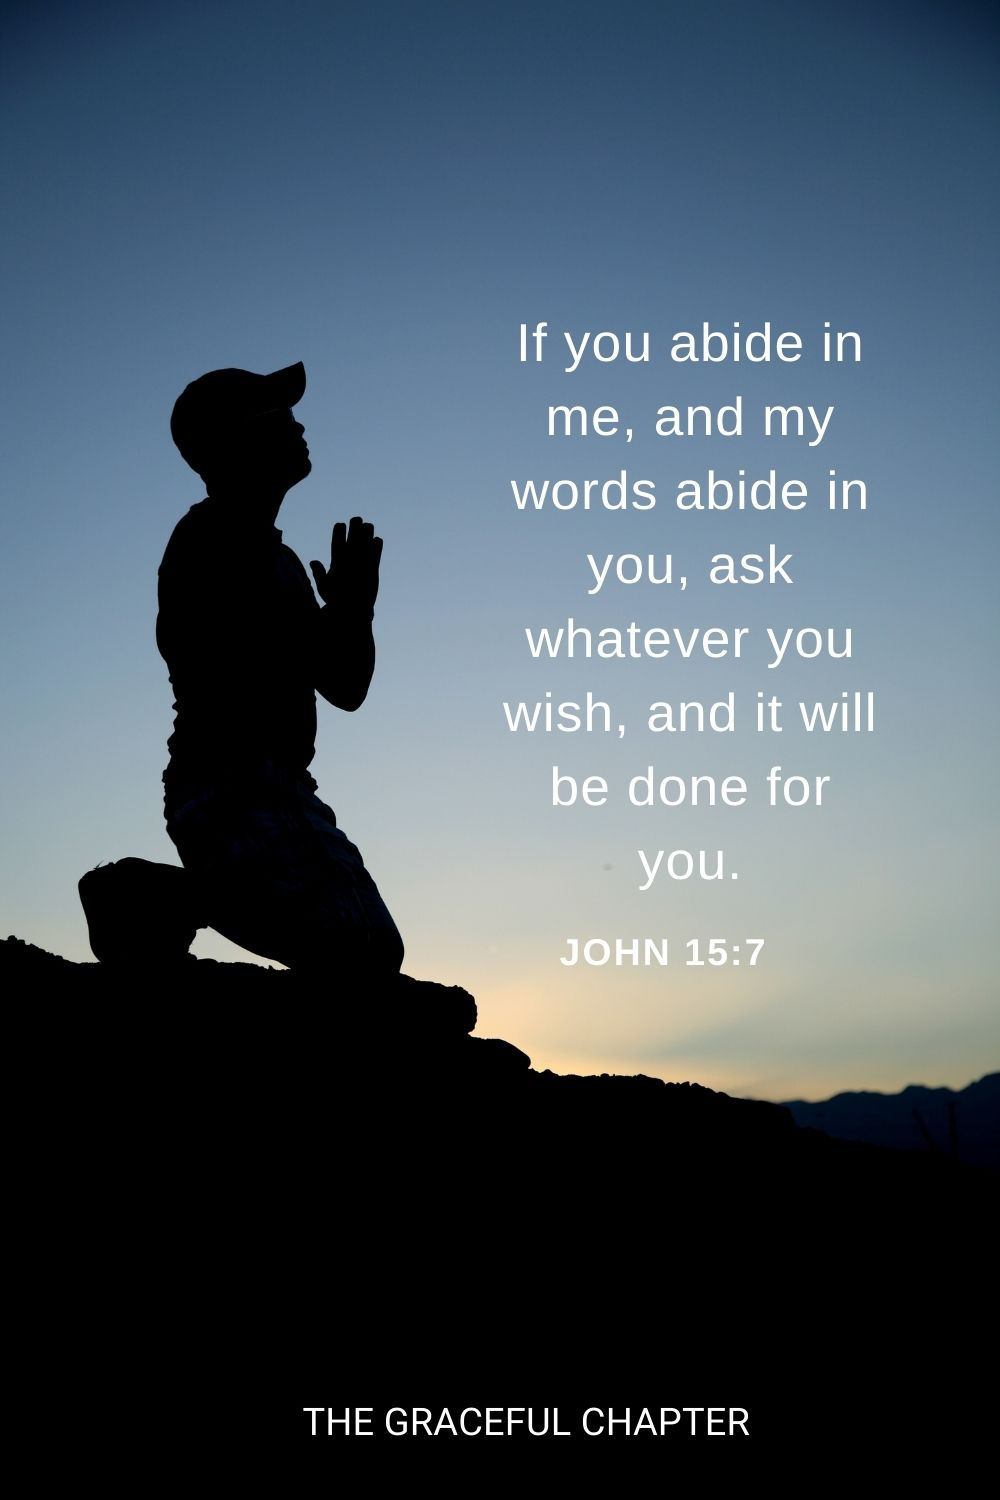 If you abide in me, and my words abide in you, ask whatever you wish, and it will be done for you. John 15:7